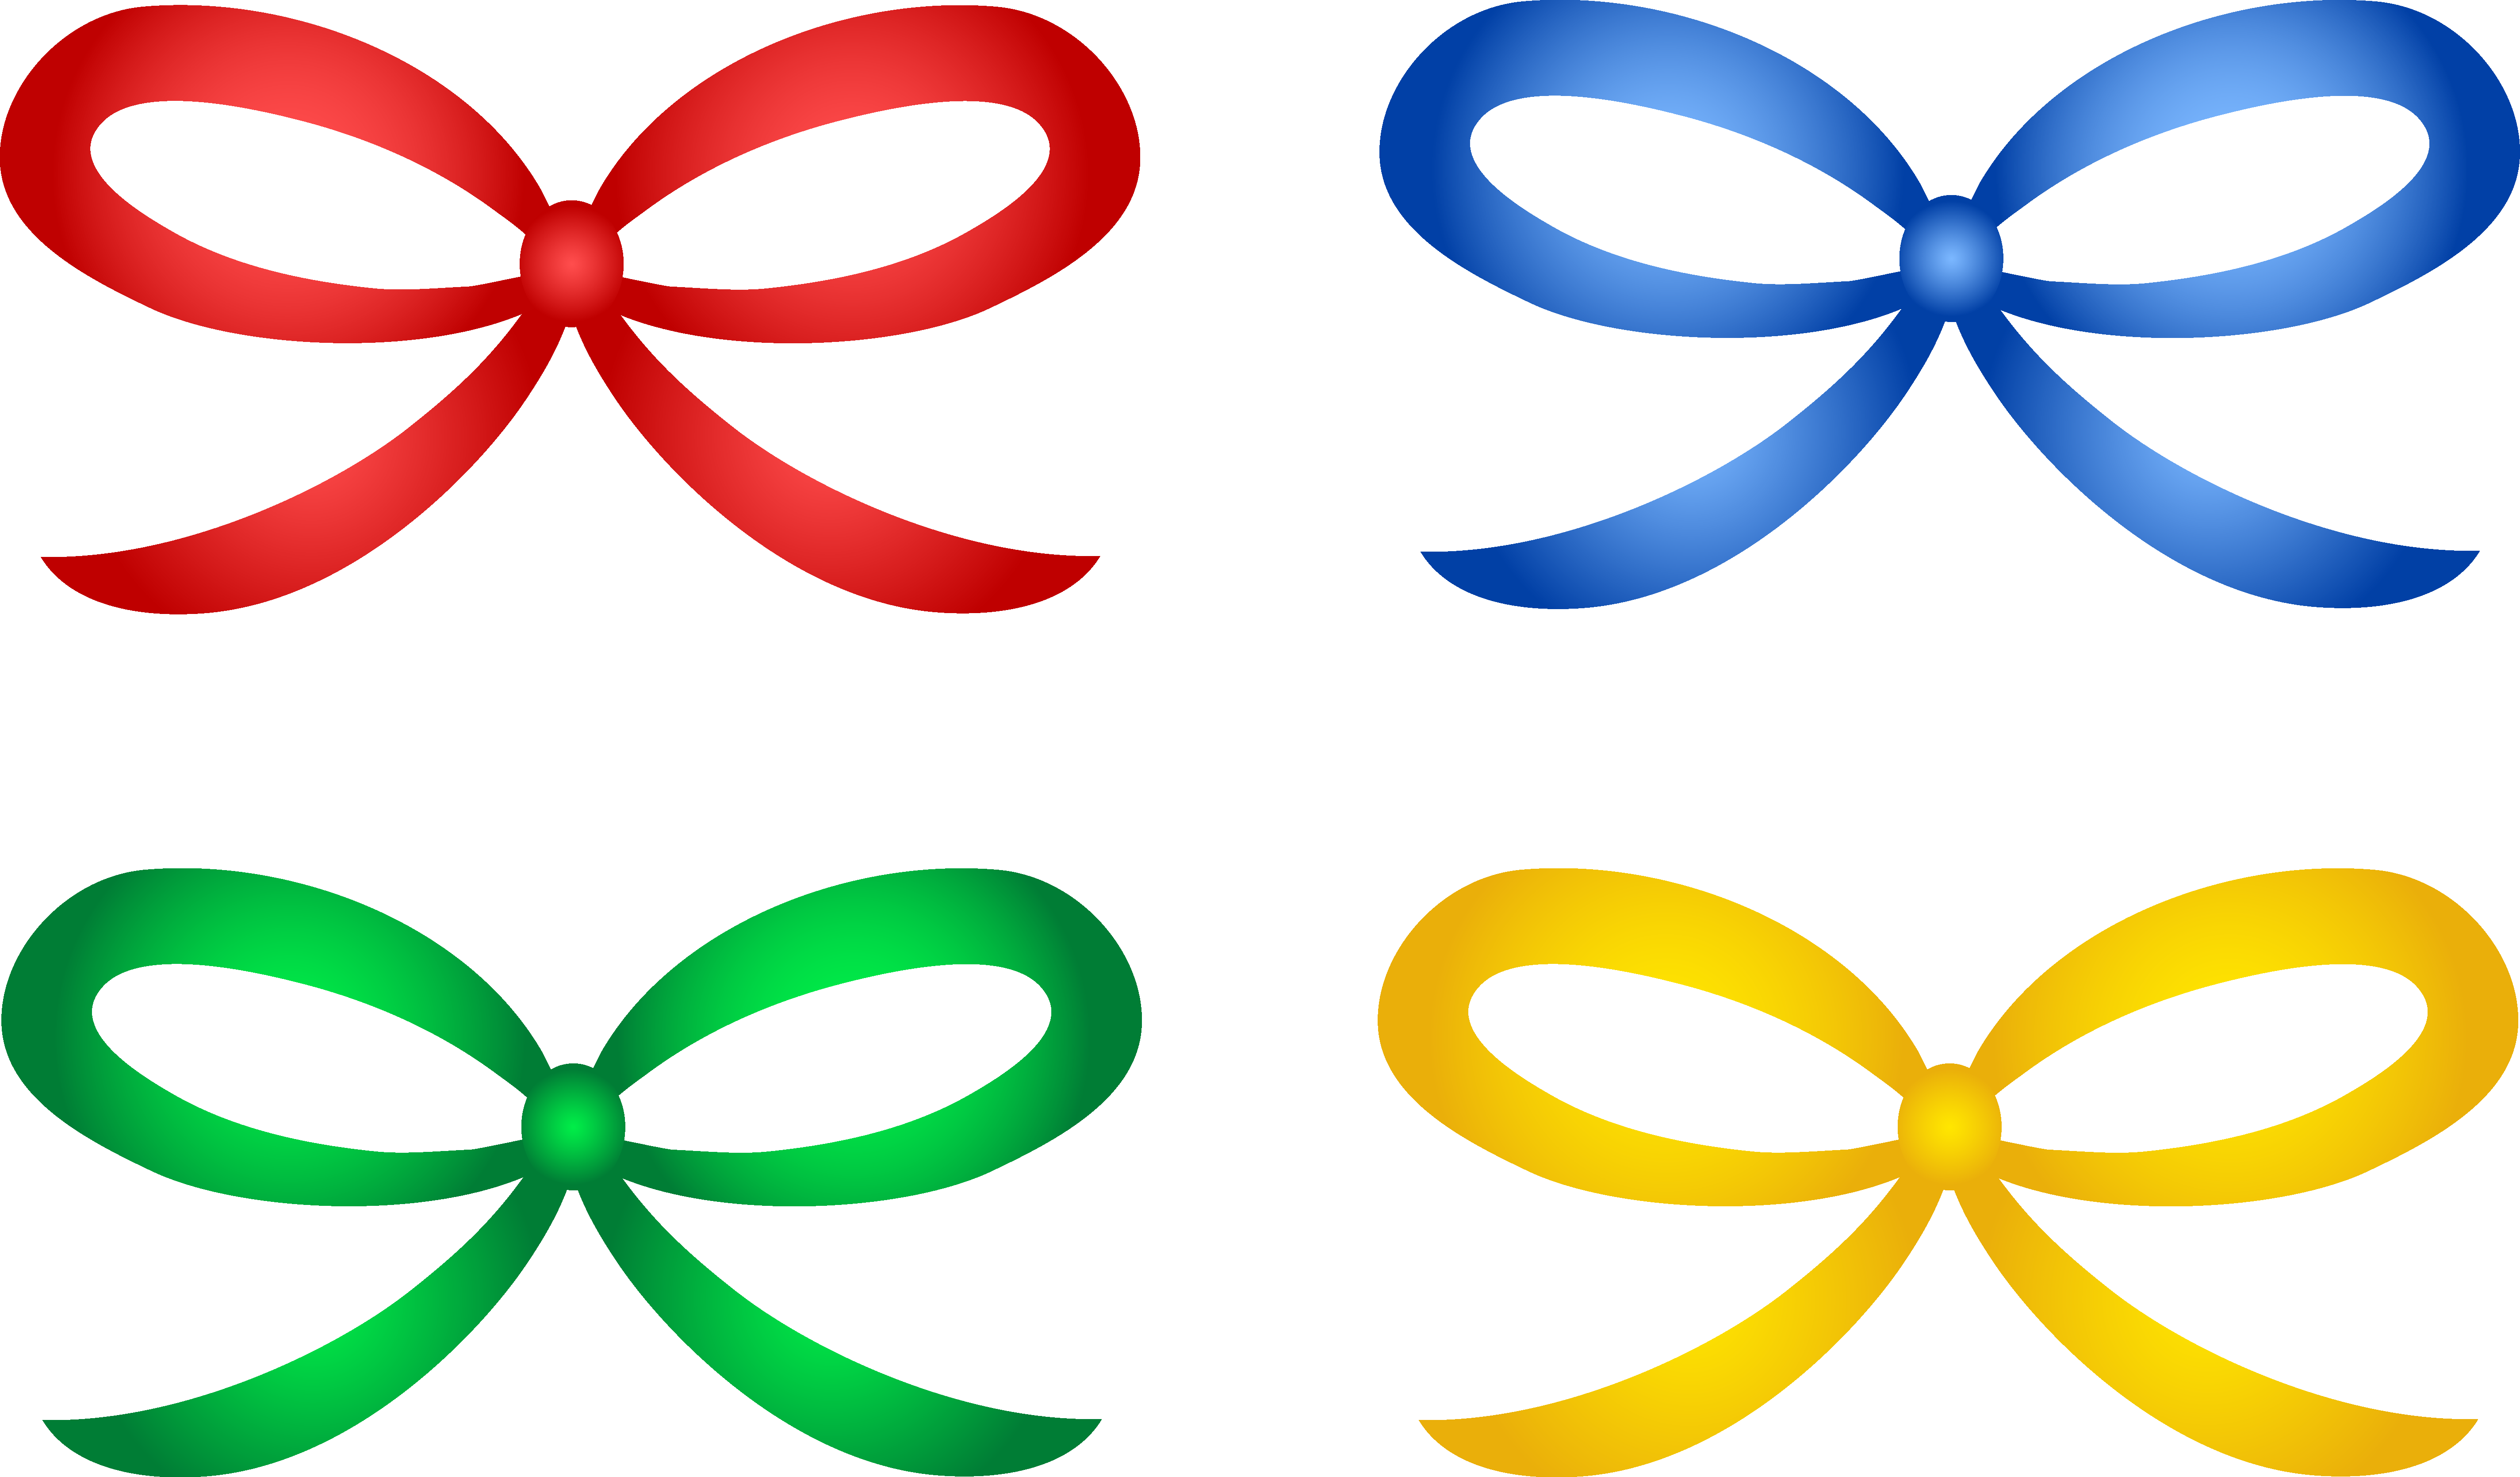 Ribbons Clipart.